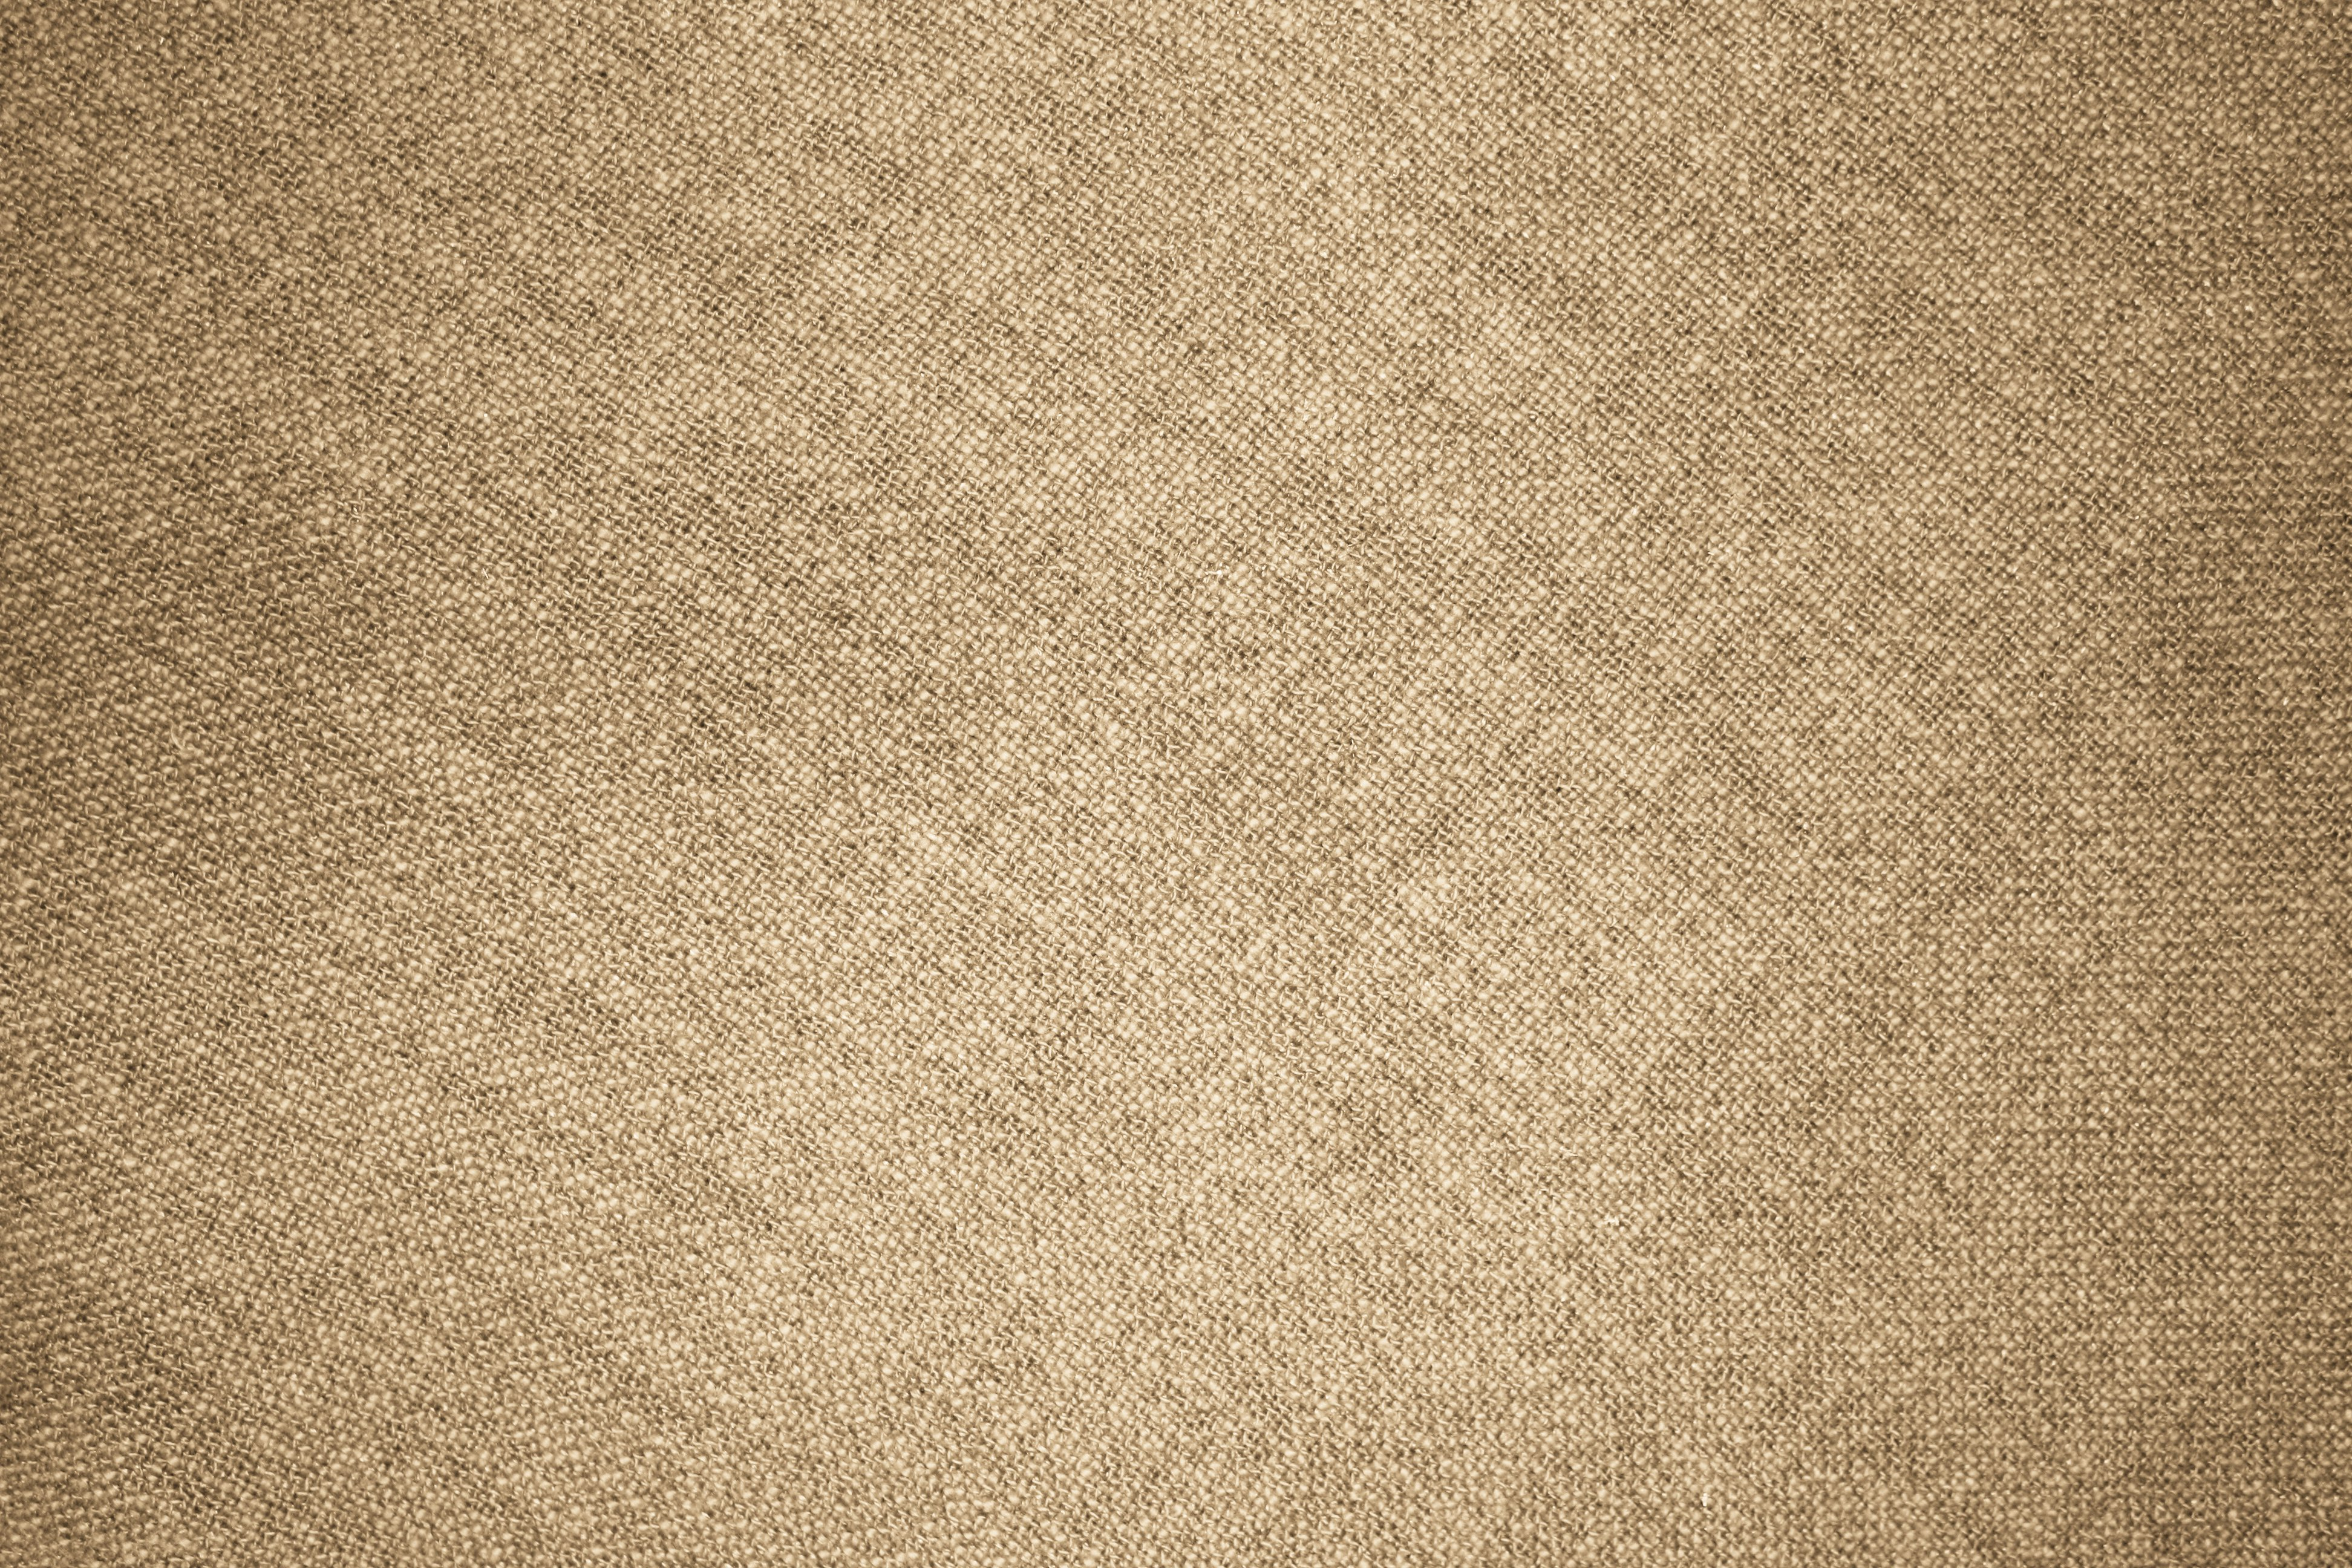 Pink fabric texture free high resolution photo dimensions 3888 - Tan Fabric Texture